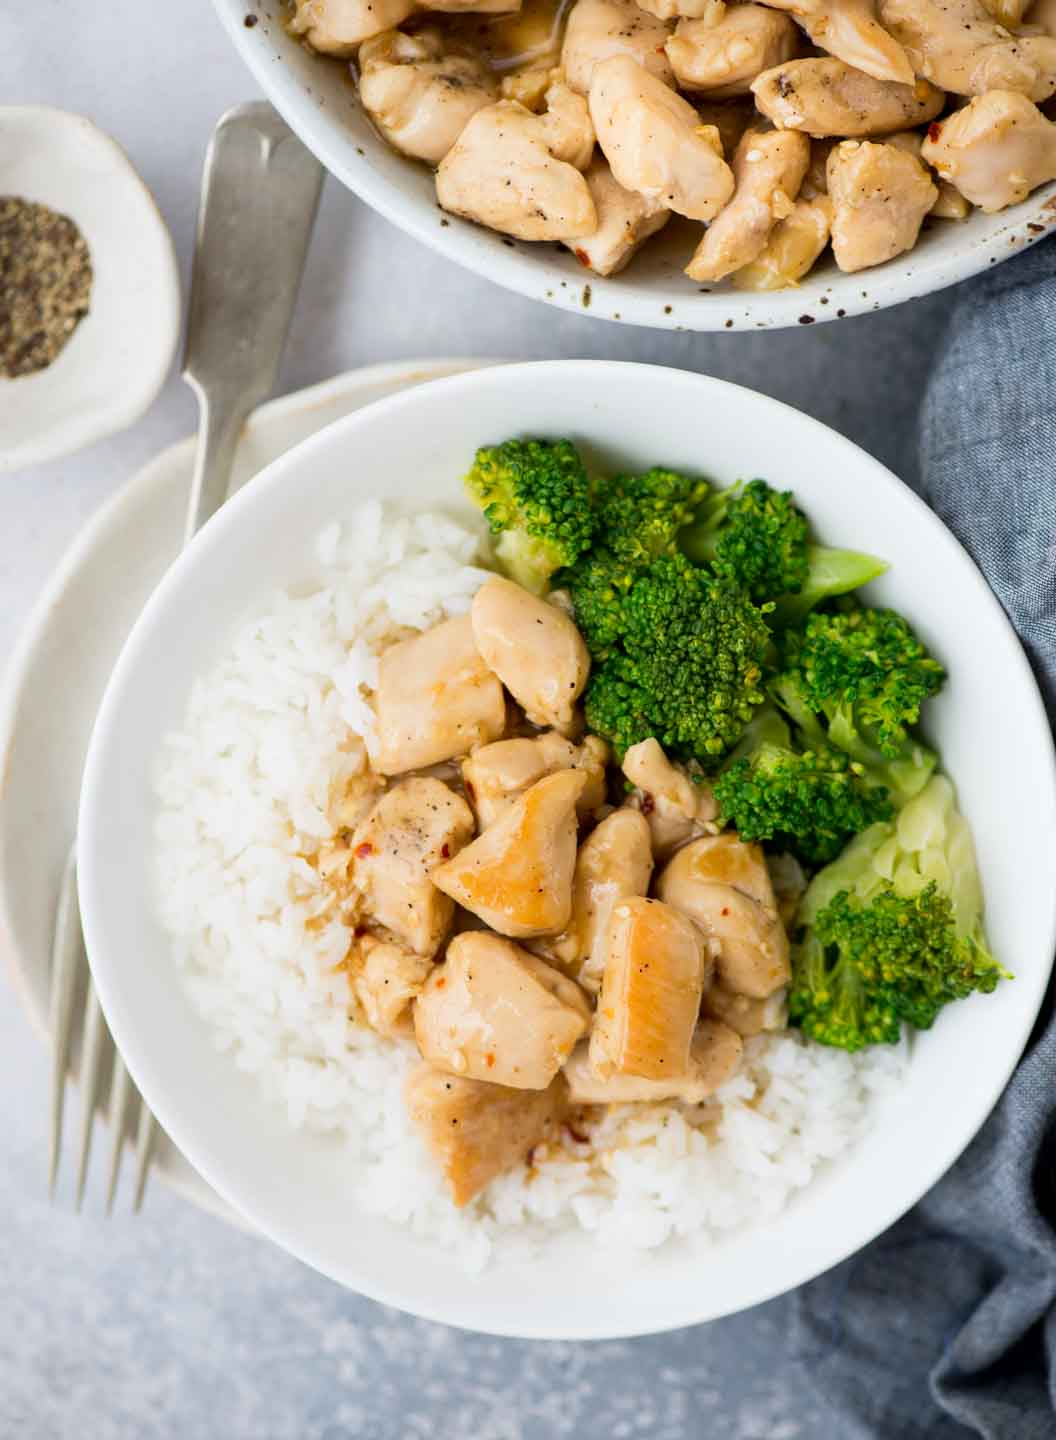 Honey Lemon Chicken,Tender Chicken coated with a zesty honey lemon sauce is really quick to make and is healthier than the regular version and also takes less than 15 mins to make.